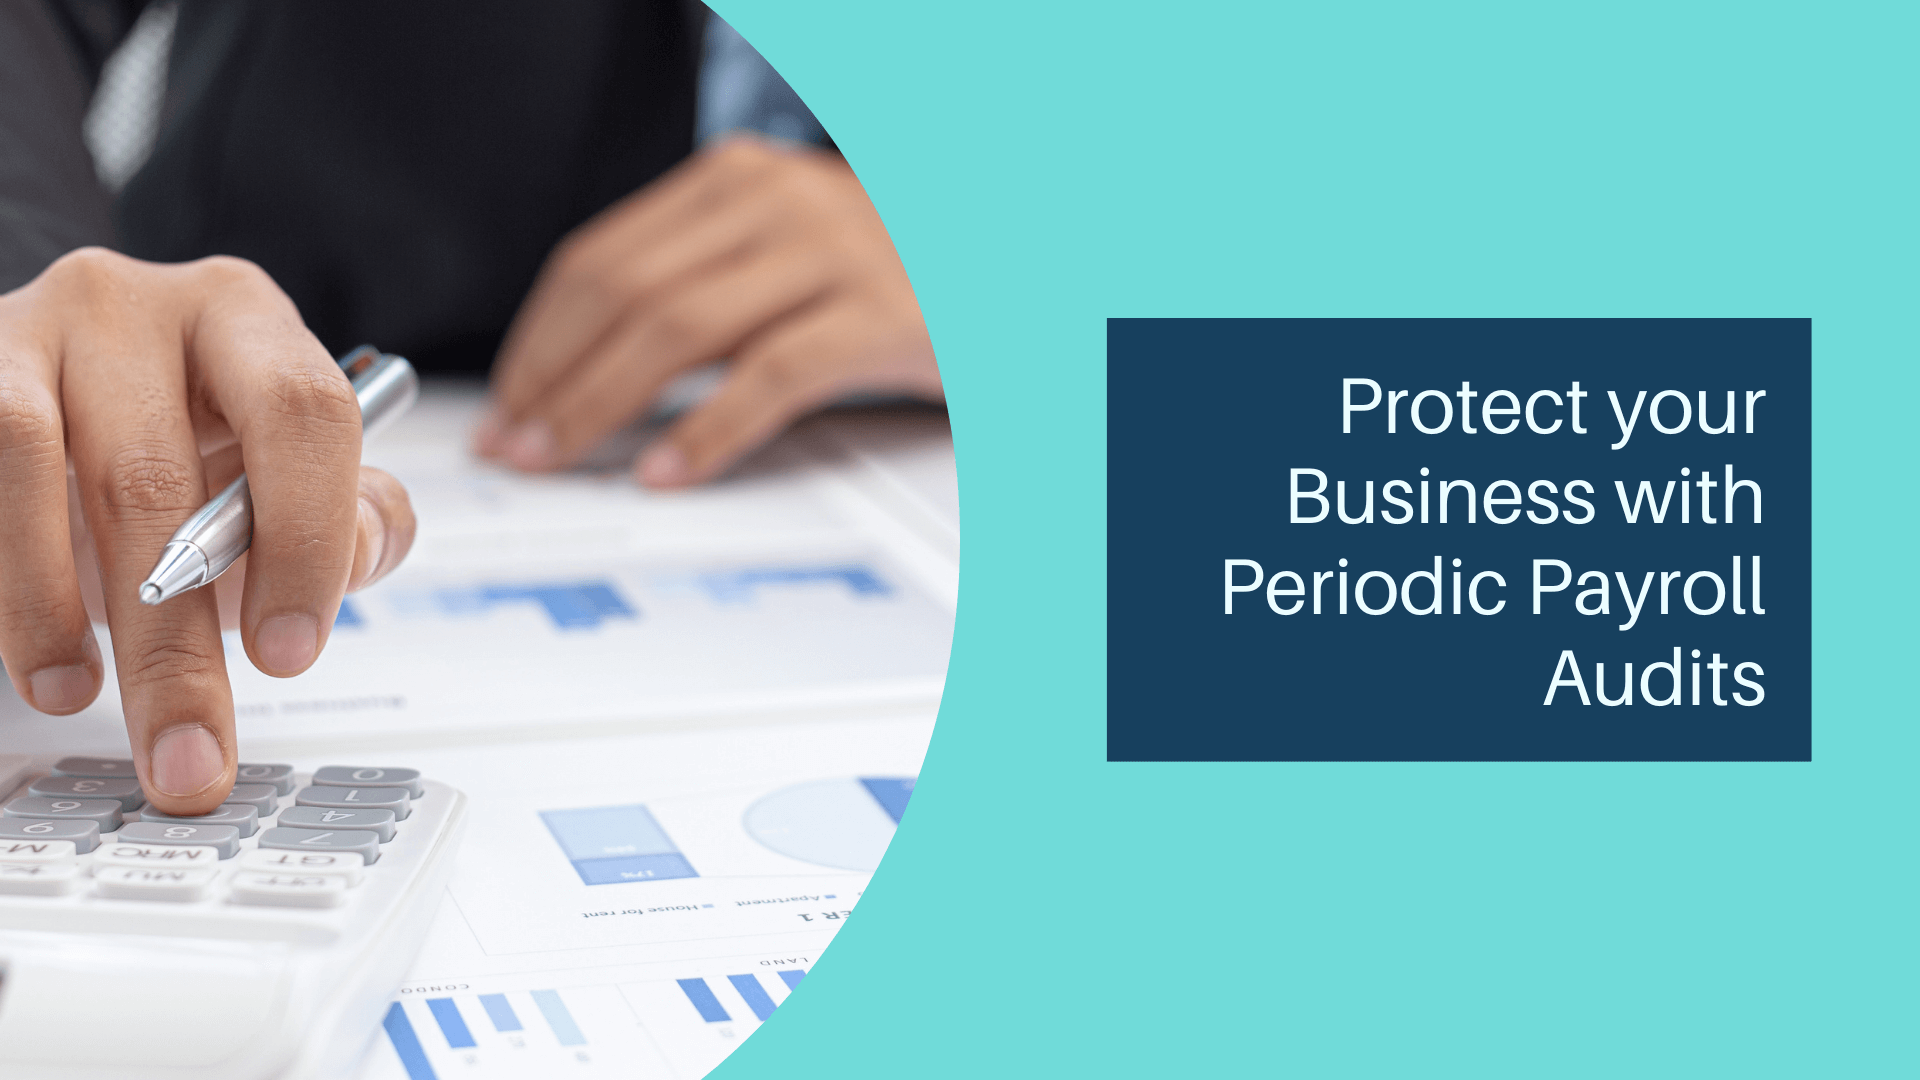 Protect your Business with Periodic Payroll Audits ~ Symphony Employer Solutions Keeps YOUR Business Compliant